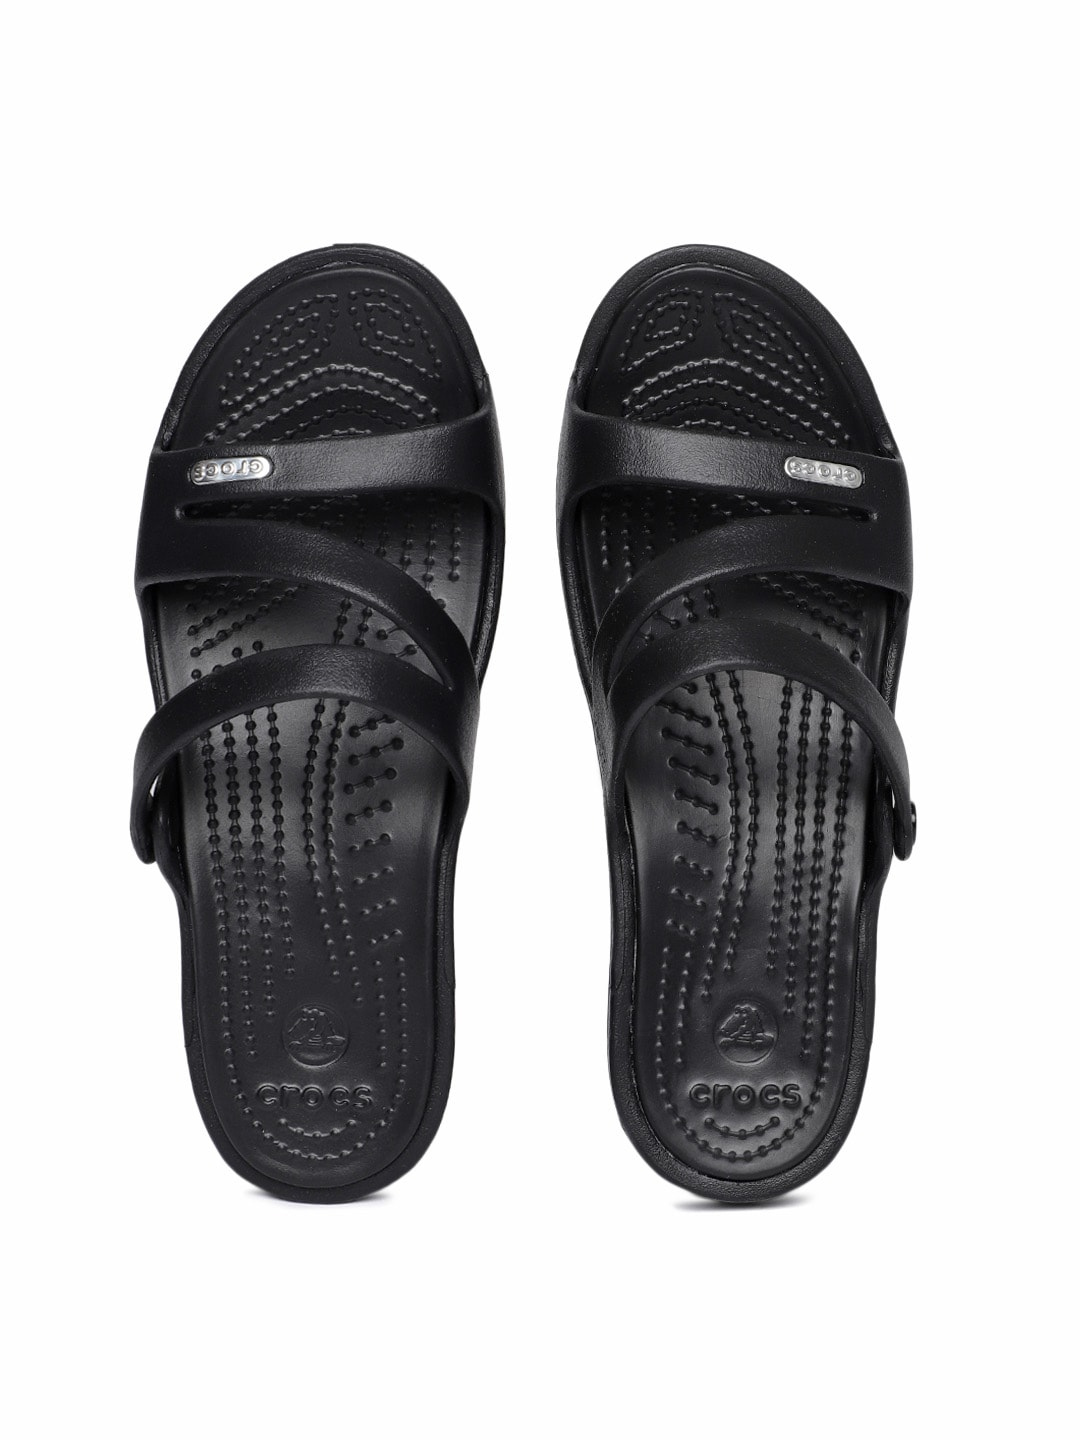 e34f62c9b398 Crocs Shoes Online - Buy Crocs Flip Flops   Sandals Online in India - Myntra